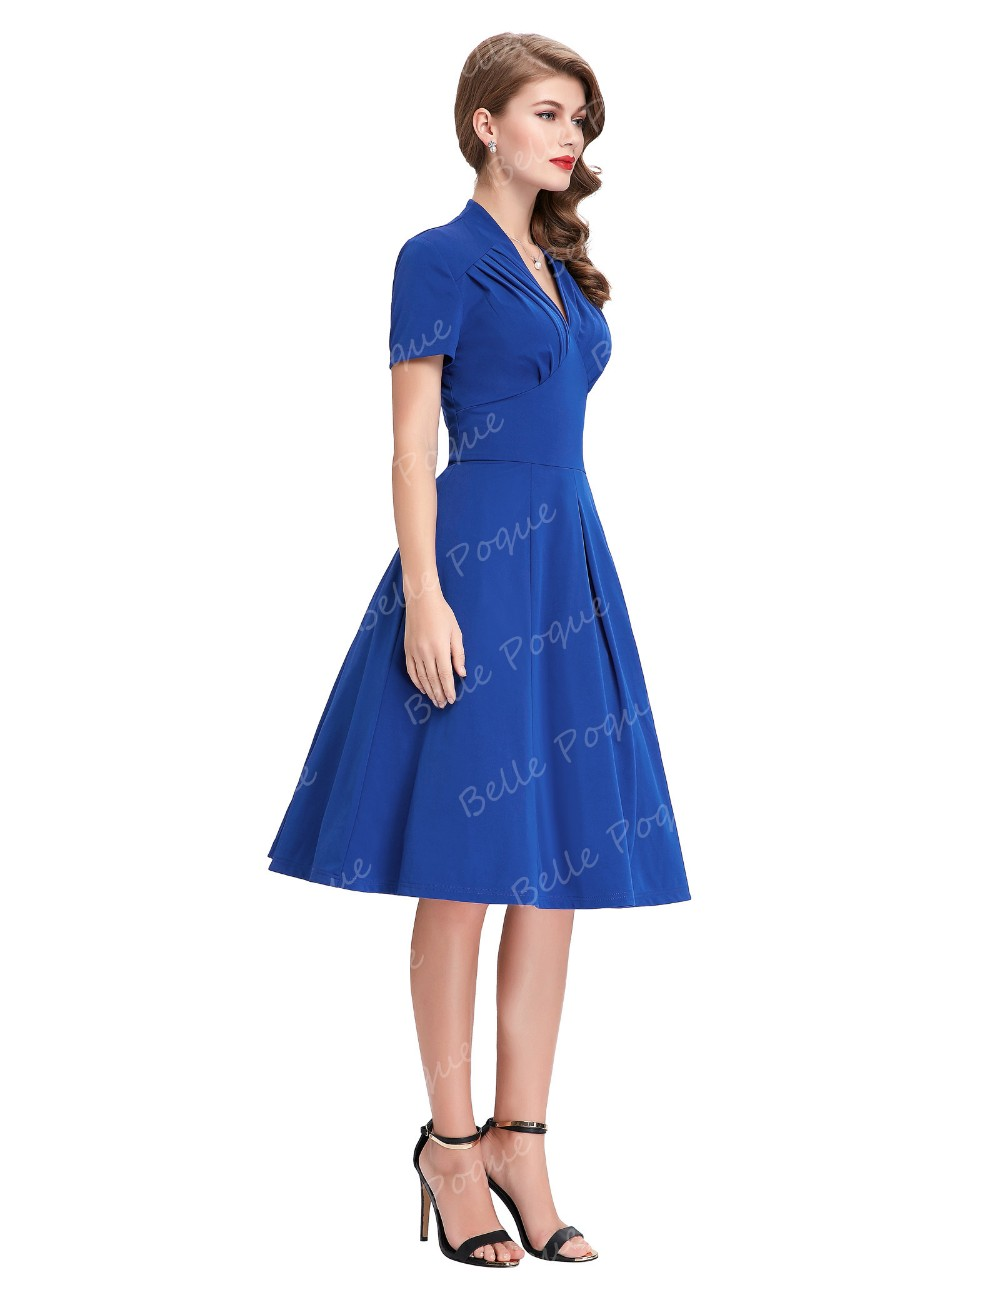 Belle Poque Stock Solid Color Short Sleeve V-Neck Blue Vintage Retro 50s Dress BP000070-2